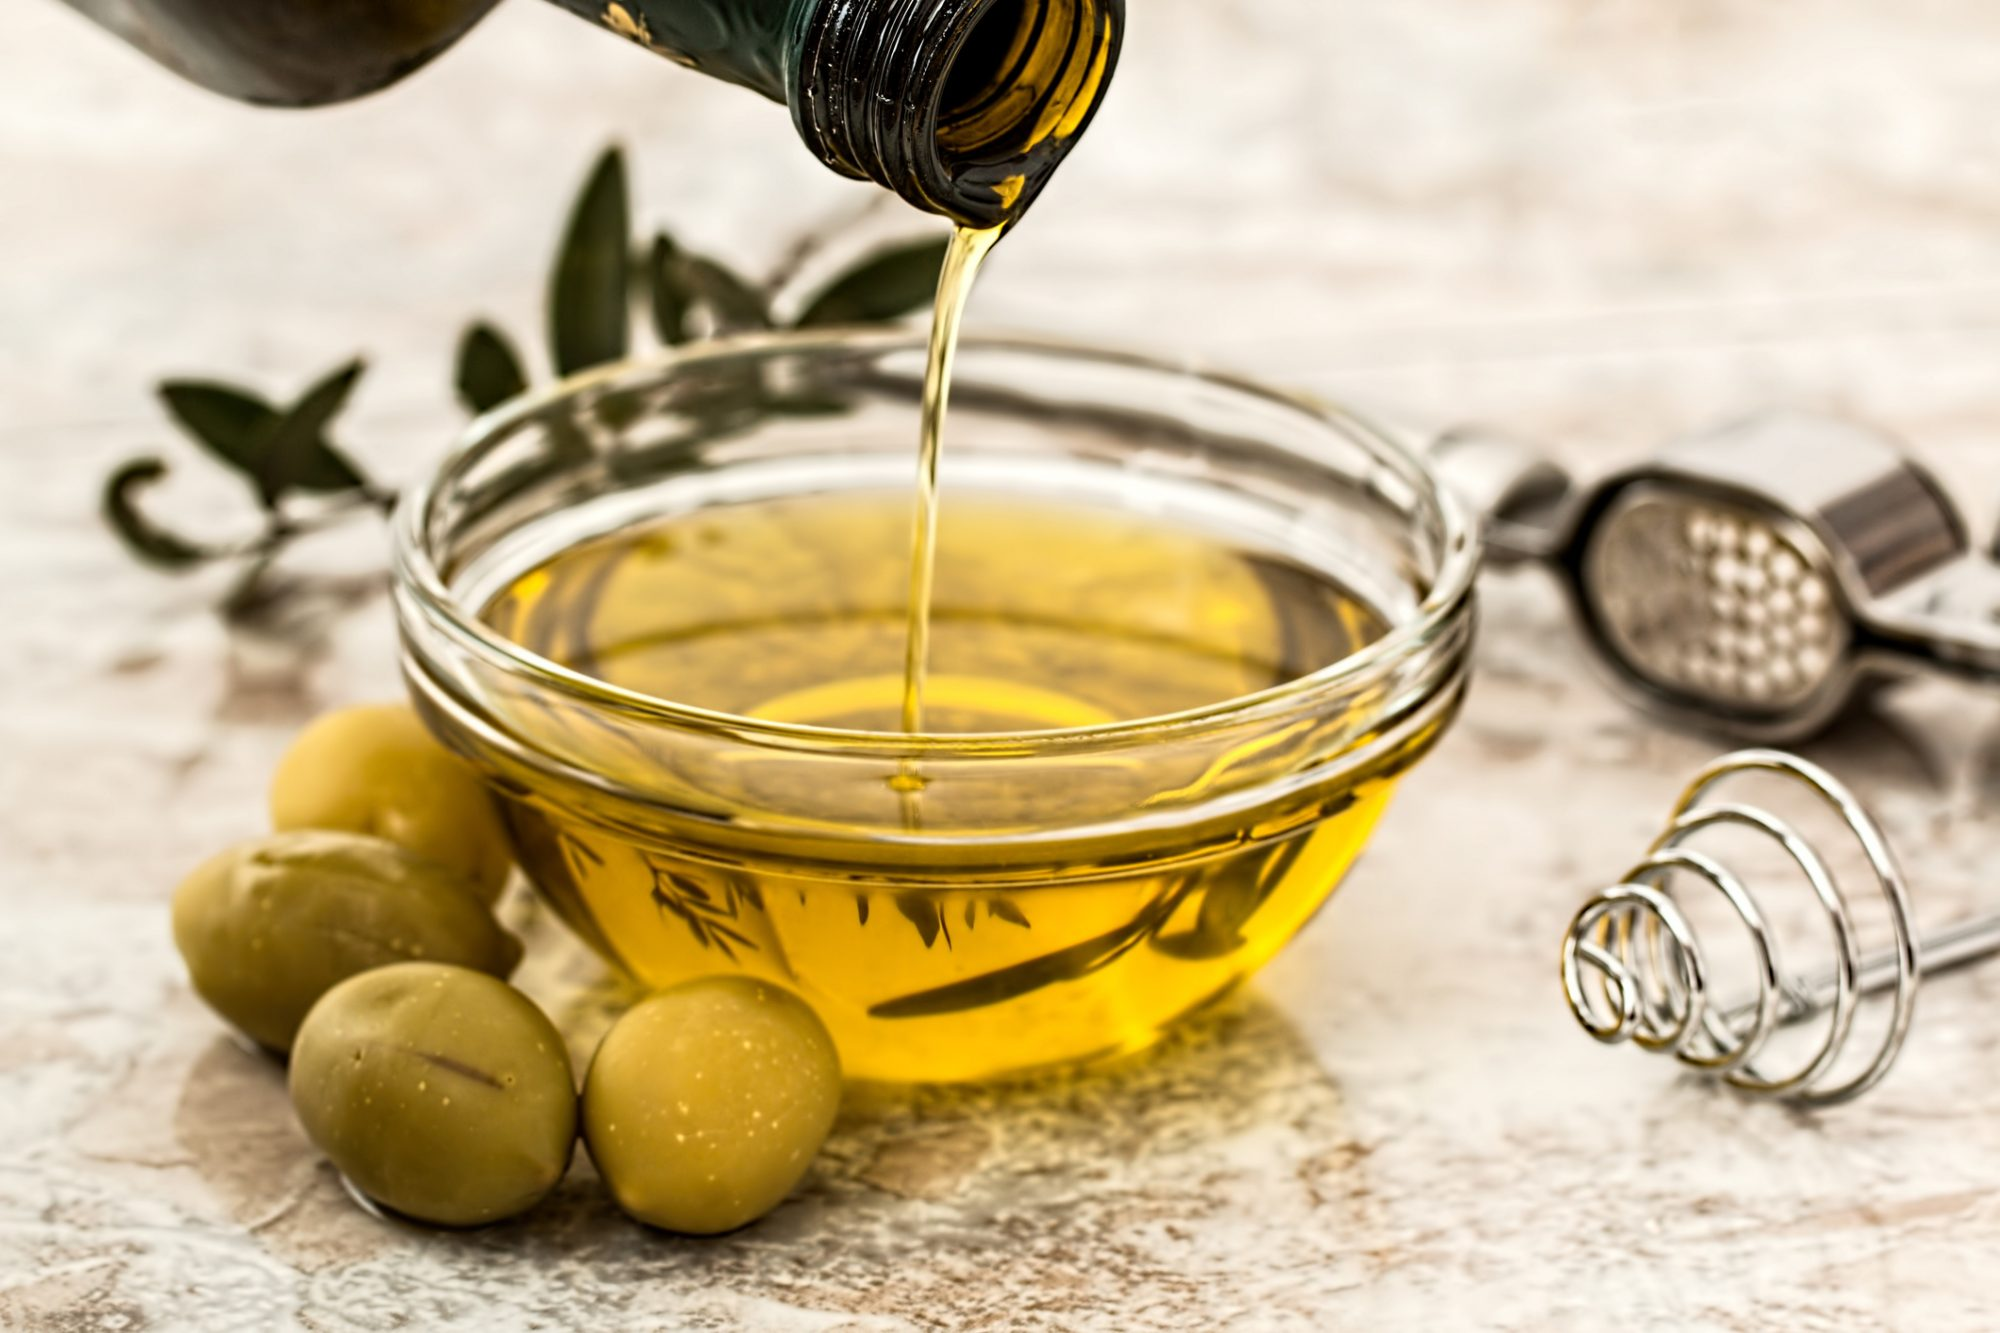 olive-oil-on-table